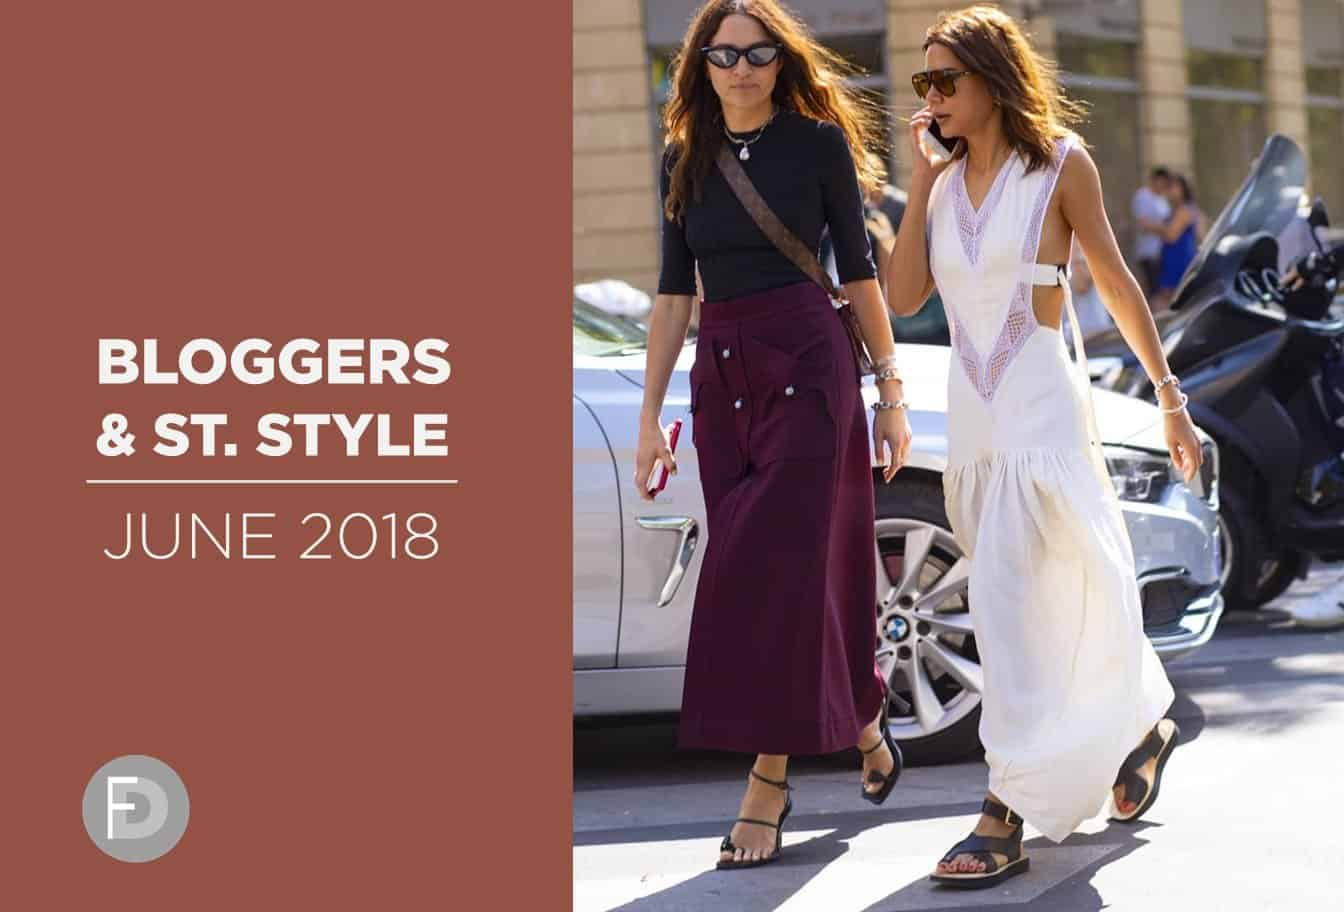 Bloggers & Street Style June 2018